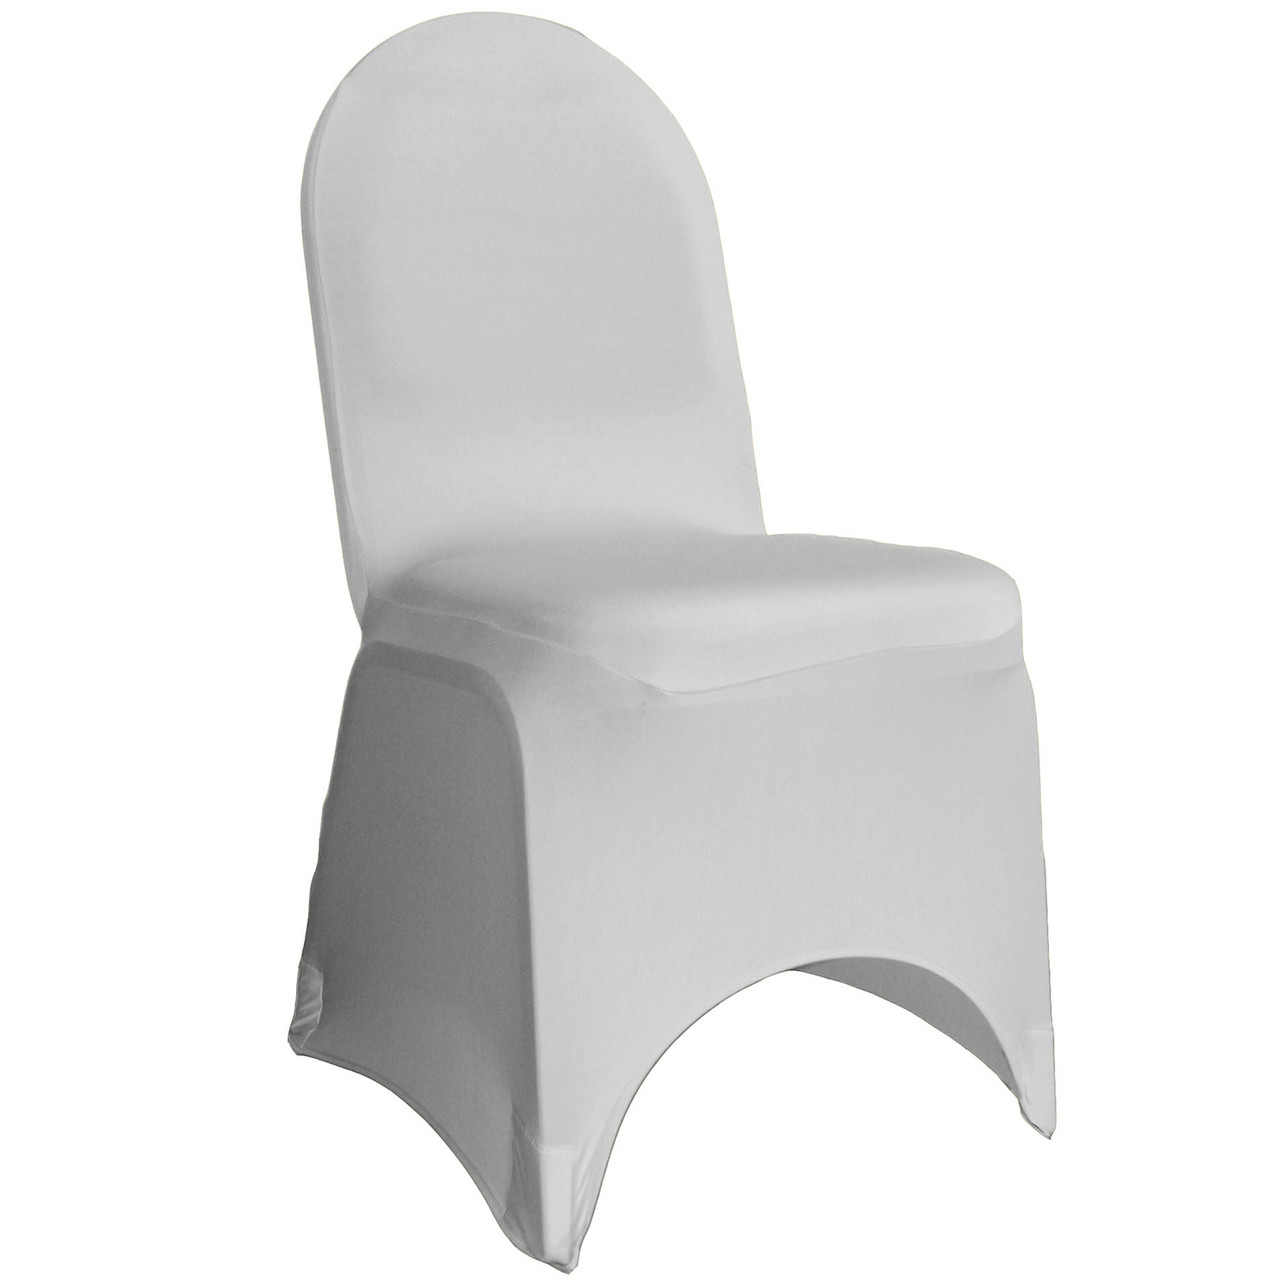 Incredible Stretch Spandex Banquet Chair Cover Silver Inzonedesignstudio Interior Chair Design Inzonedesignstudiocom